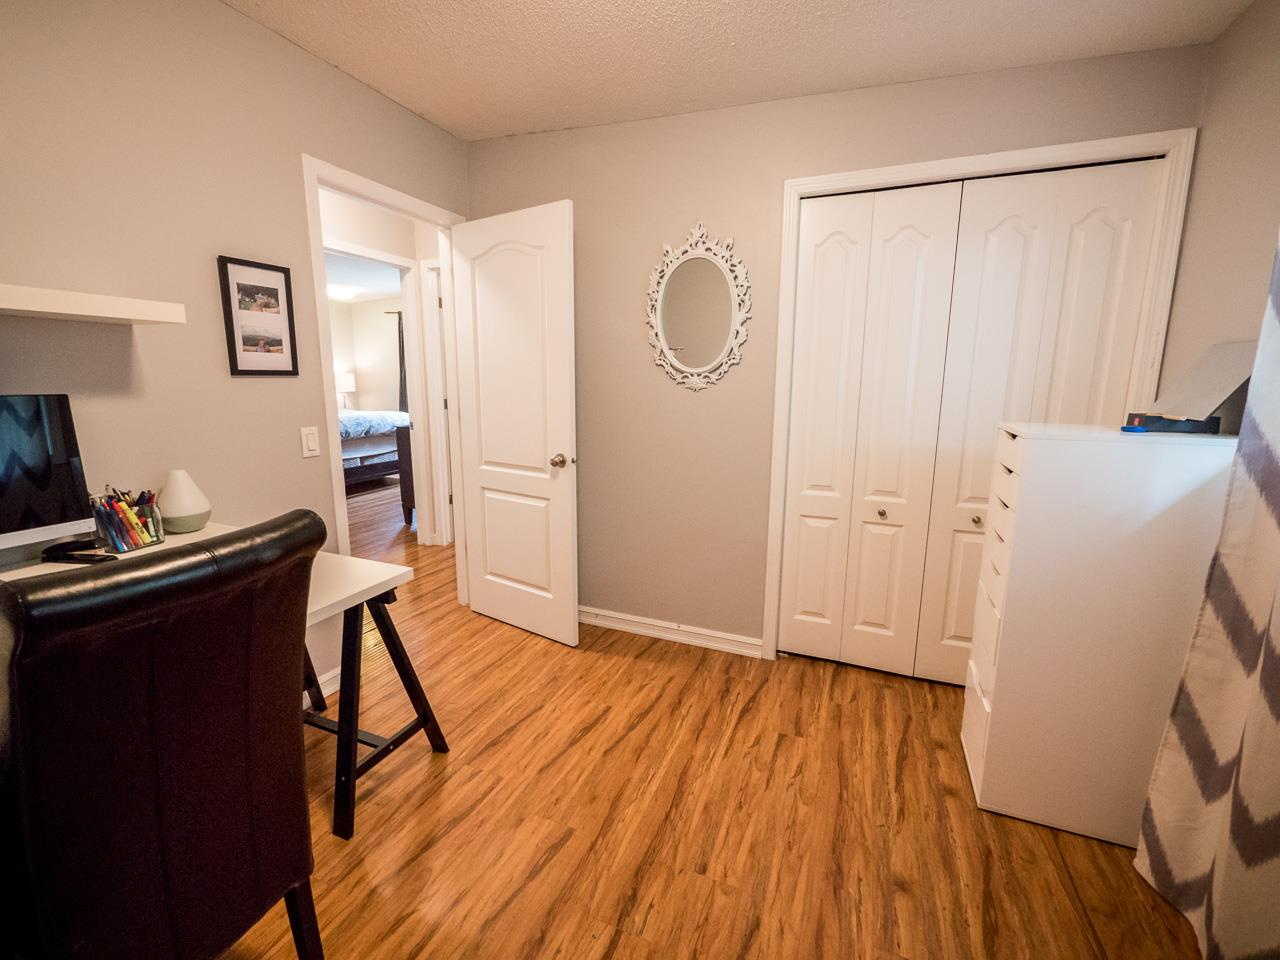 Photo 15: 13 GREYSTONE Place: St. Albert House for sale : MLS(r) # E4069777